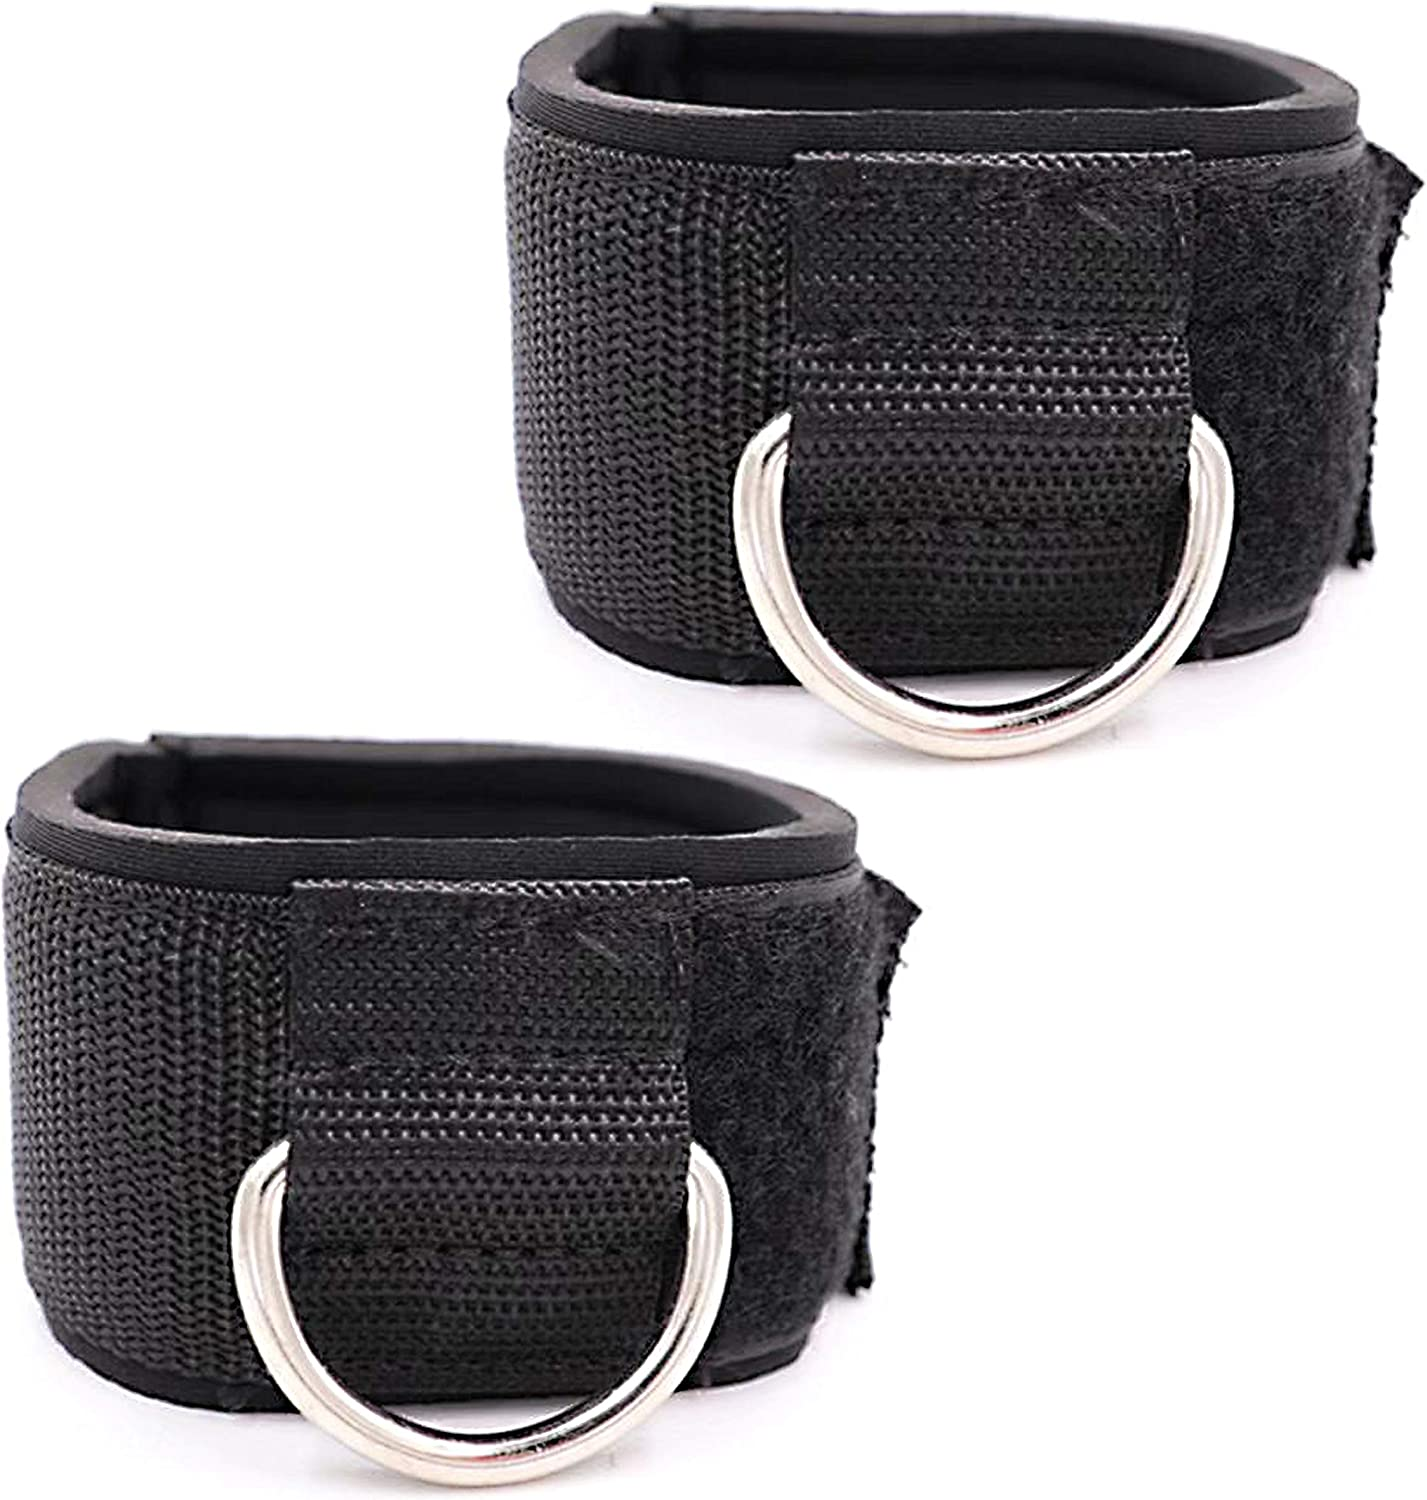 Fitness Ankle Straps, Ankle Workout Strap for Gym Machines Exerc